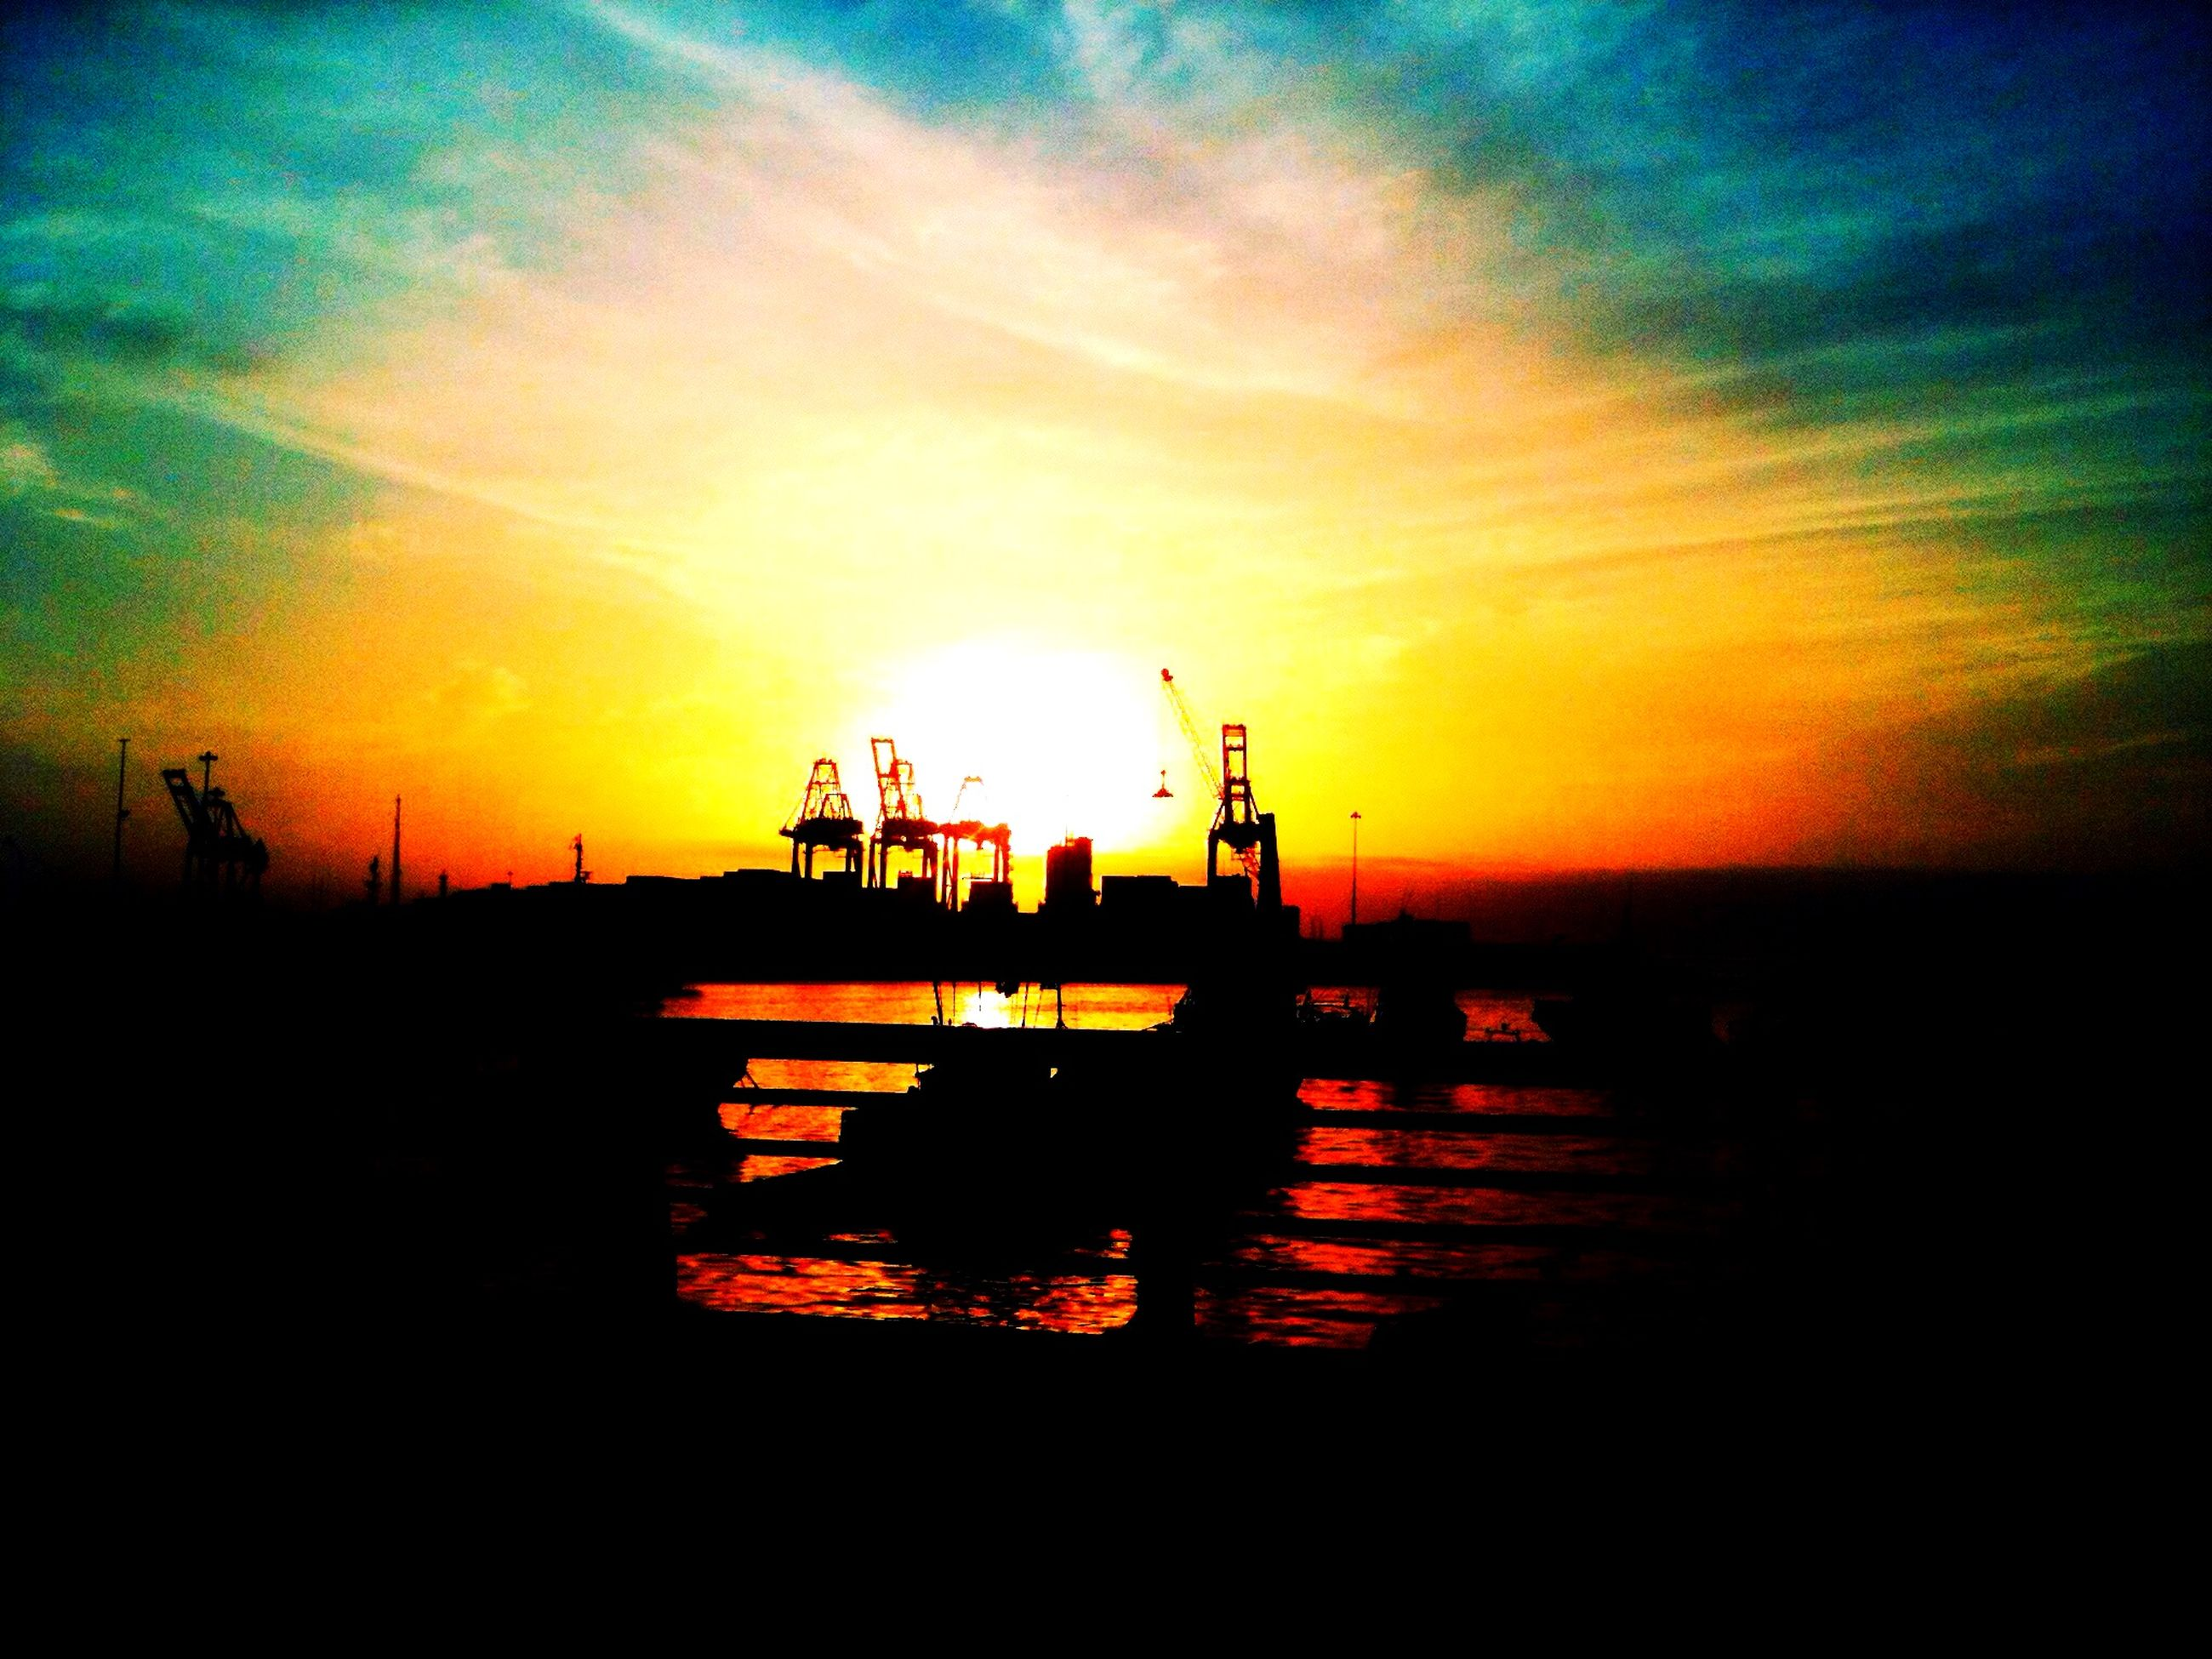 sunset, silhouette, water, orange color, sky, sun, nautical vessel, scenics, beauty in nature, tranquil scene, cloud - sky, sea, tranquility, nature, dramatic sky, boat, idyllic, harbor, reflection, mode of transport